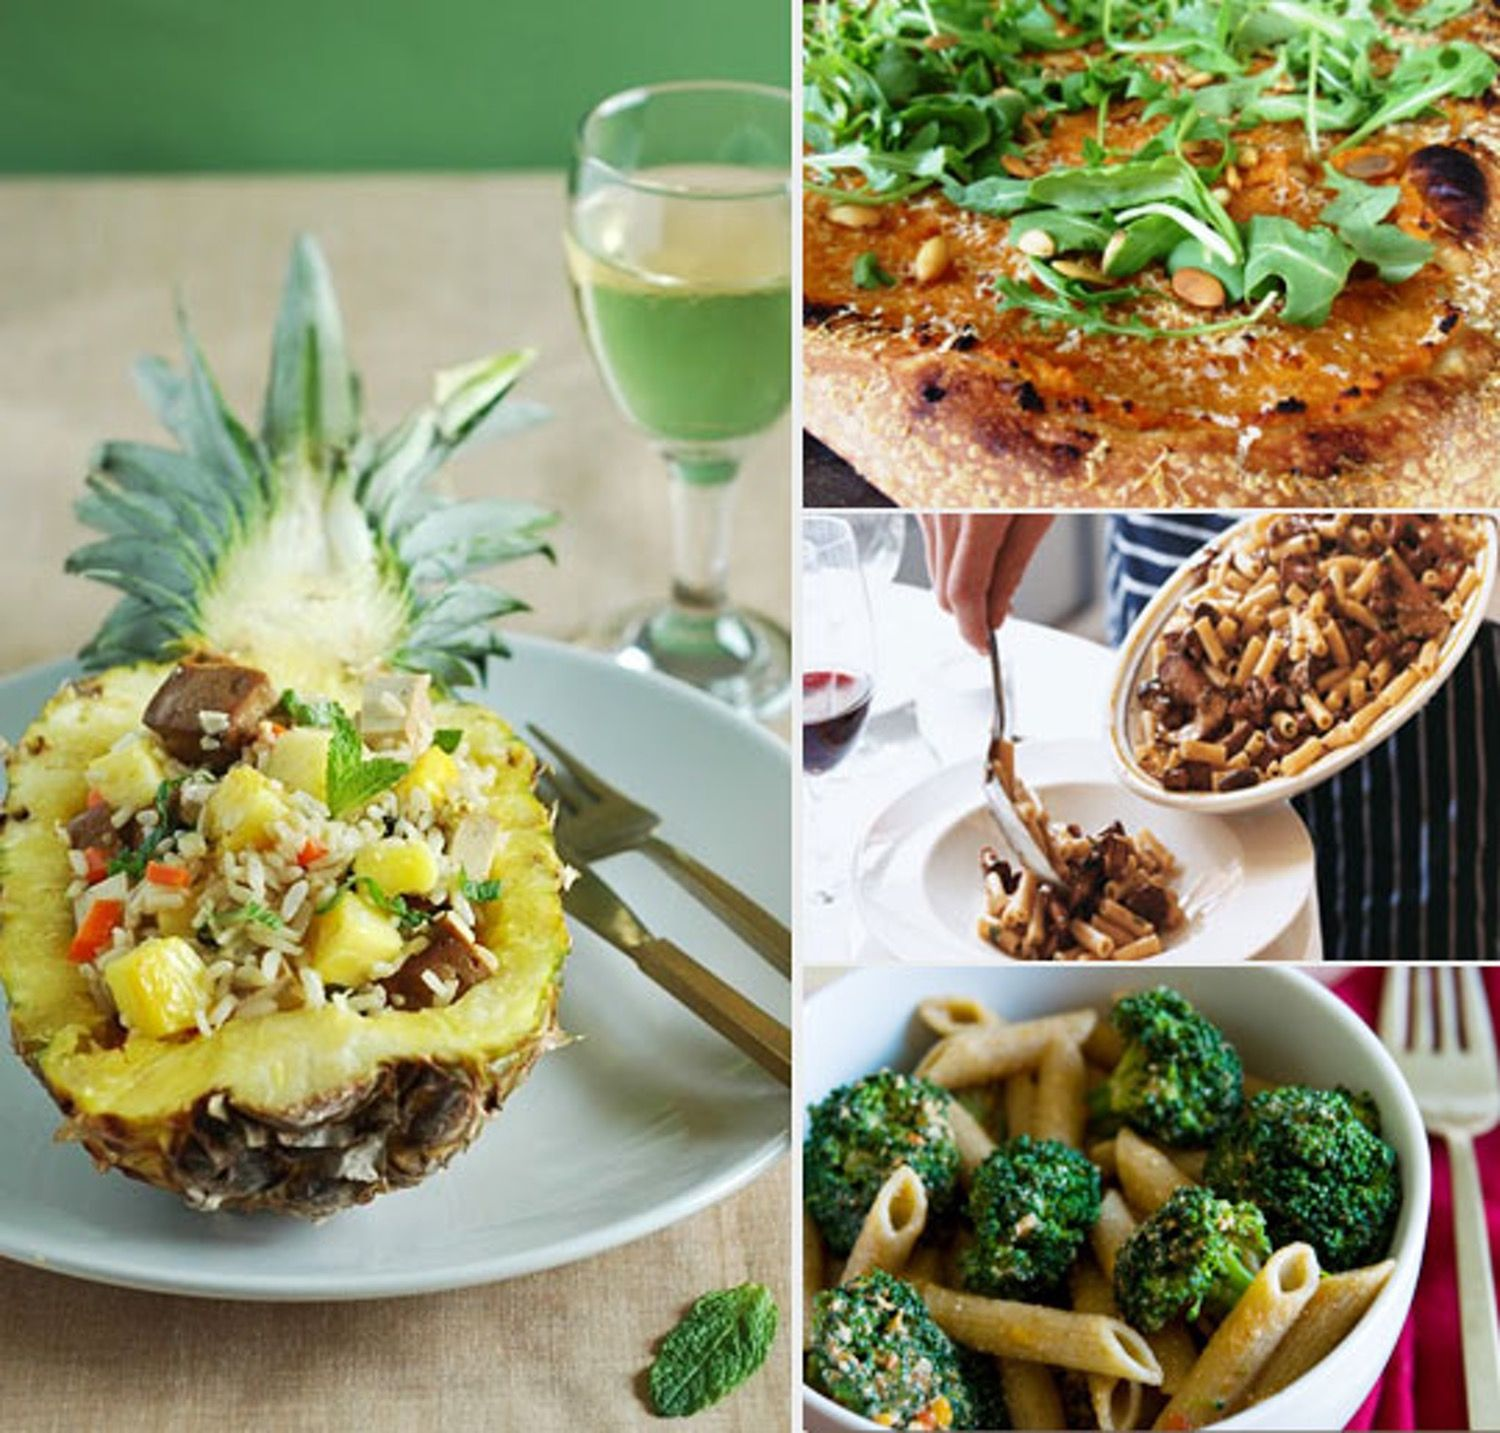 Vegetarian Dinner Party Recipes Ideas Part - 47: Our Readersu0027 Favorite Vegetarian Dinner Party Dishes U2014 Reader Intelligence  Report